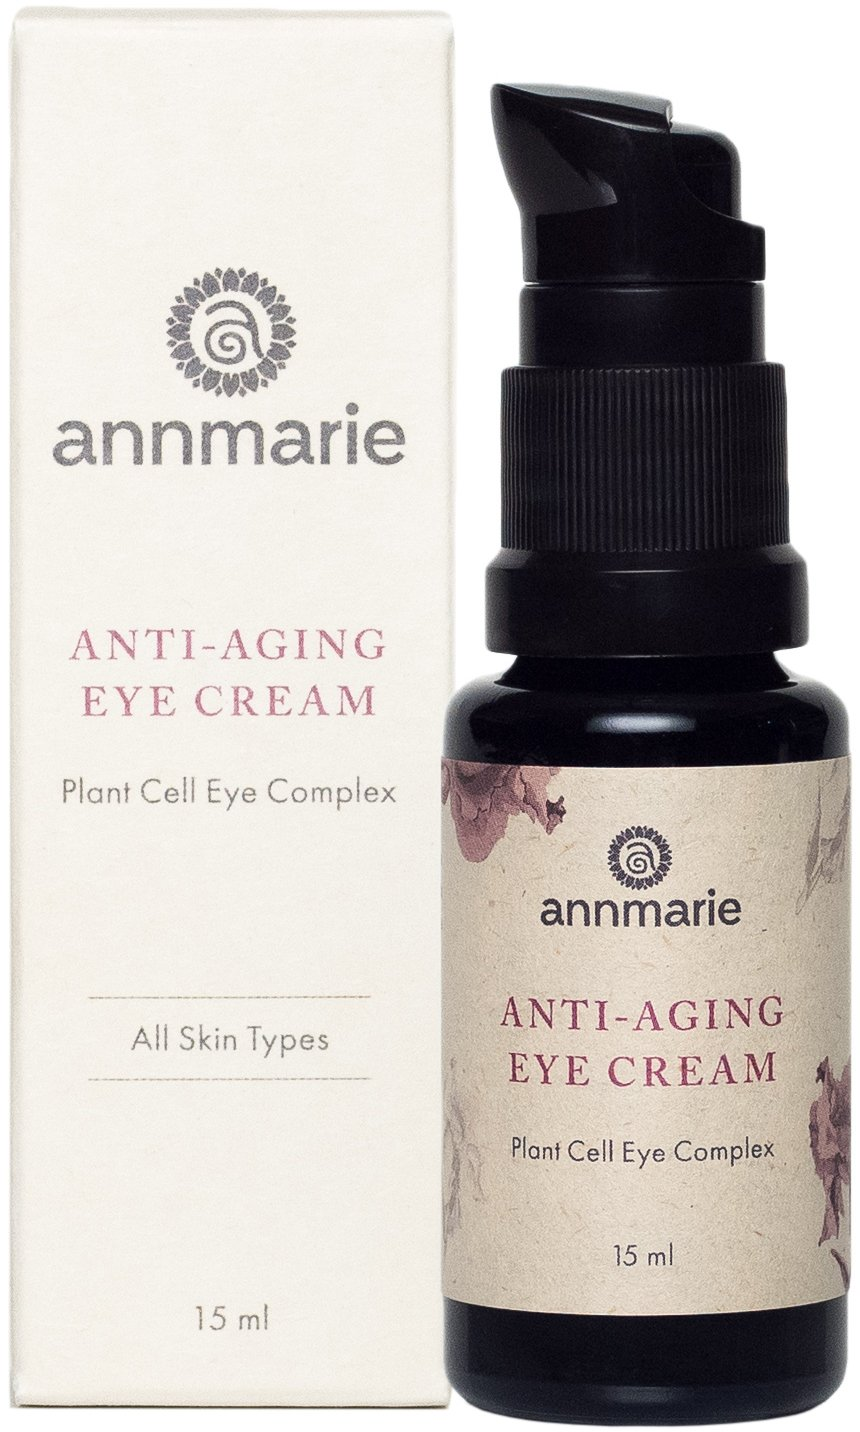 Annmarie Skin Care Anti-Aging Eye Cream - Hydrating Eye Cream with Rose and Sweet Iris Plant Cells, Cucumber Extract + CoQ10 - Soothing Organic Eye Cream Moisturizer for Puffiness (15 ml / 0.5 fl oz)